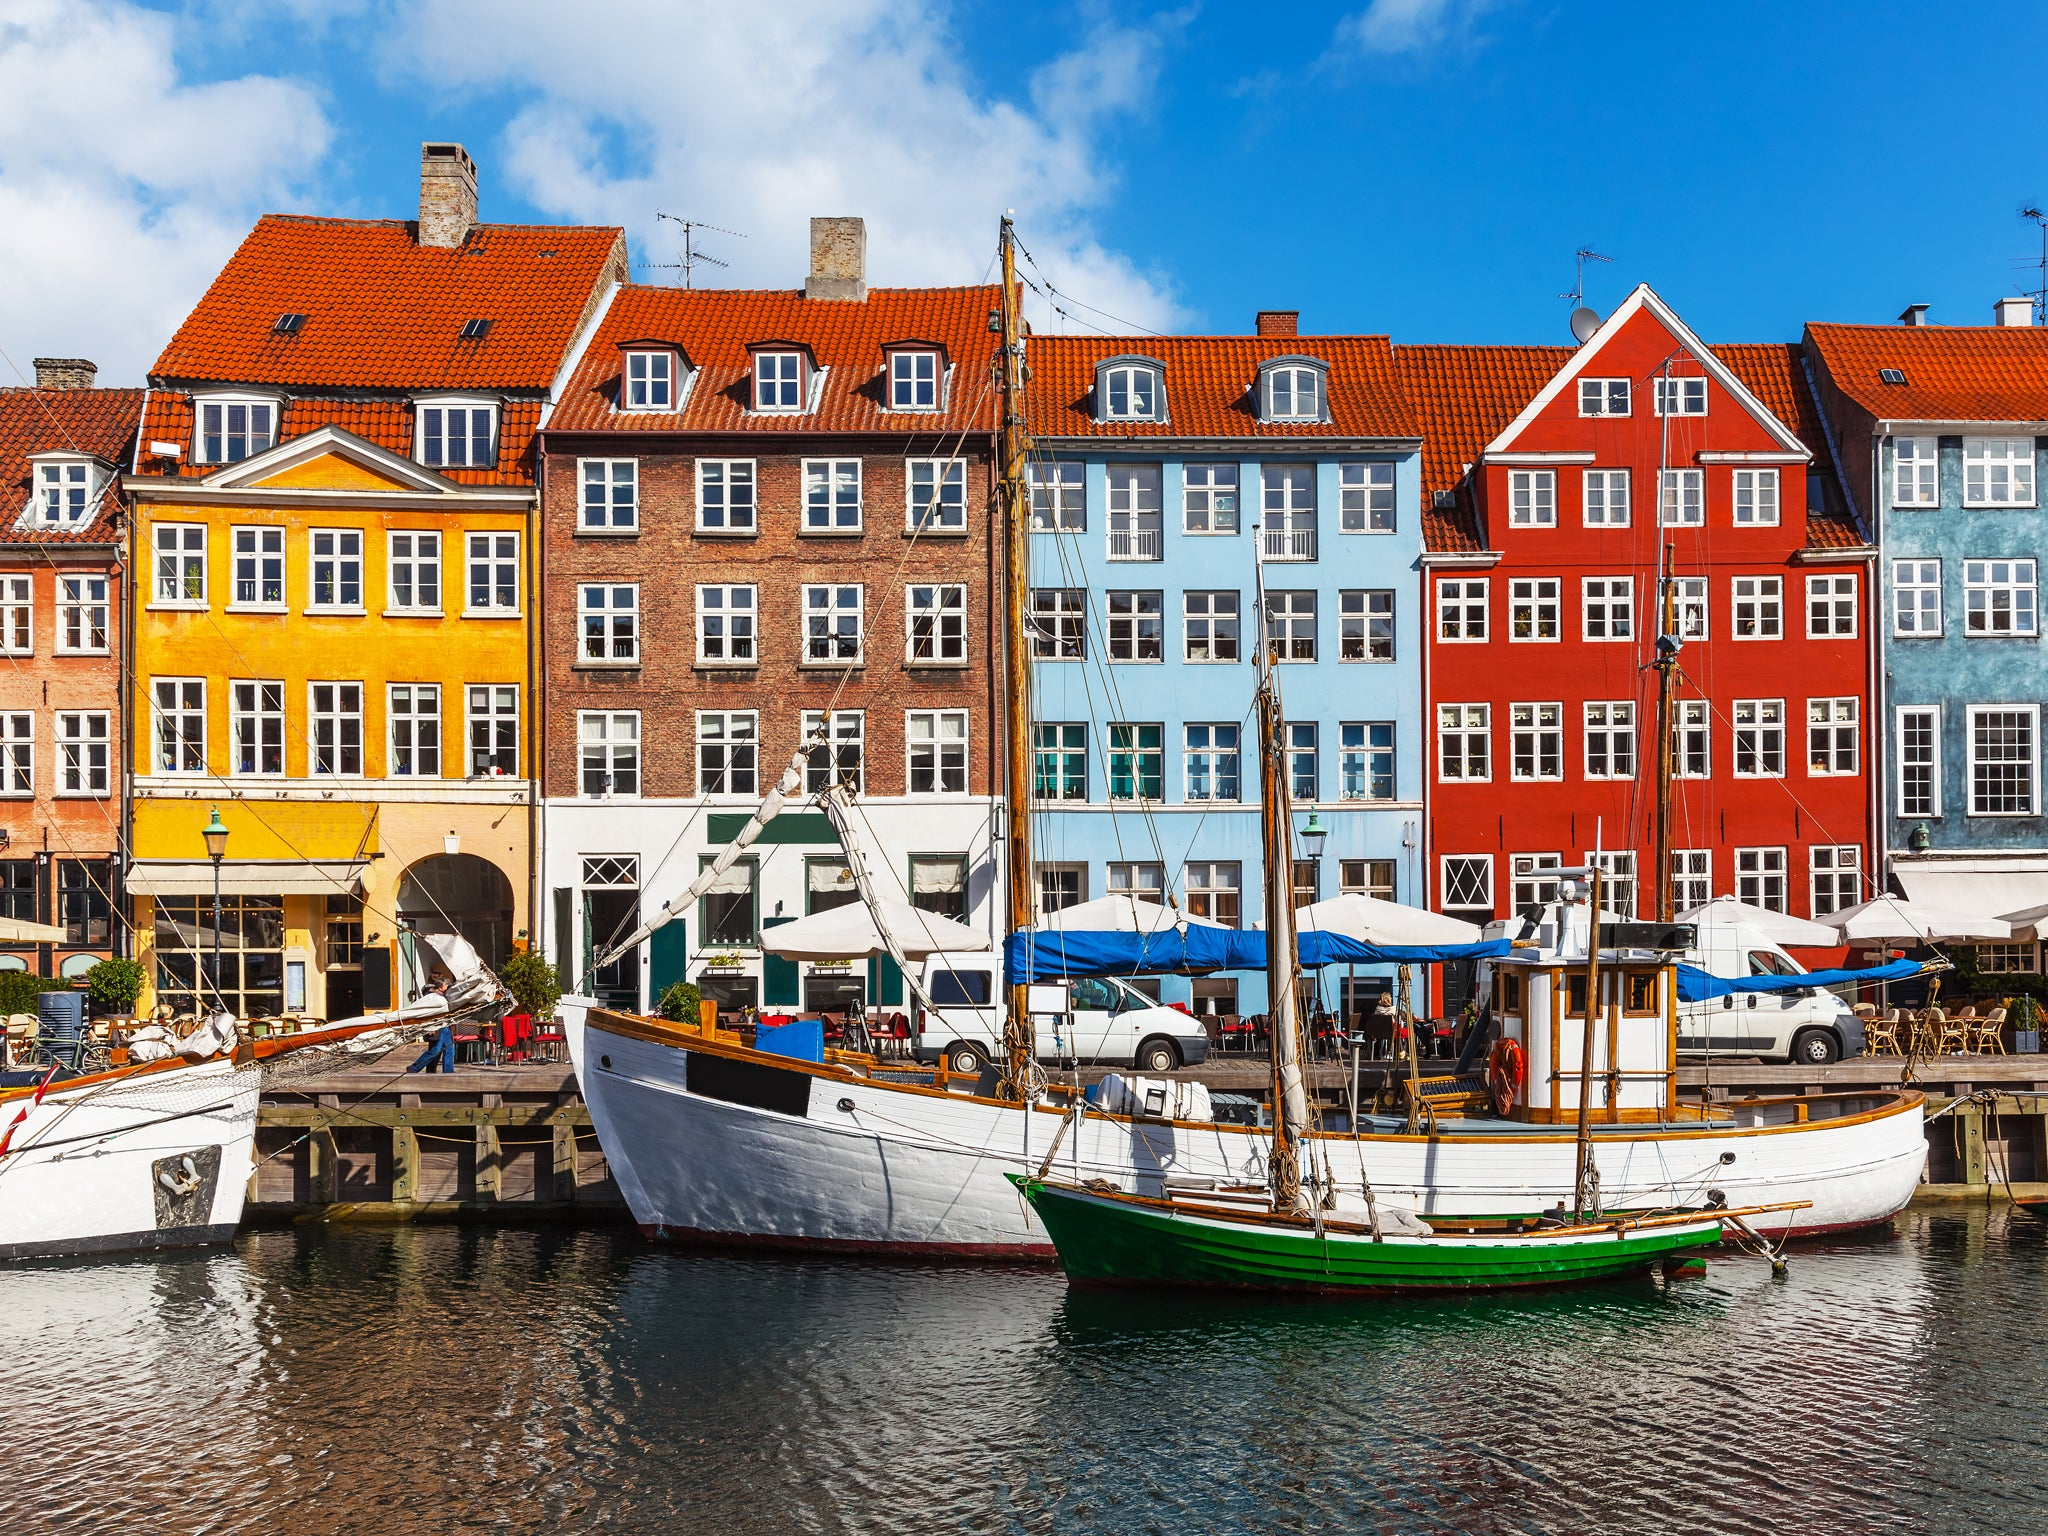 Copenhagen budget hotels: 10 best places to stay for value of money